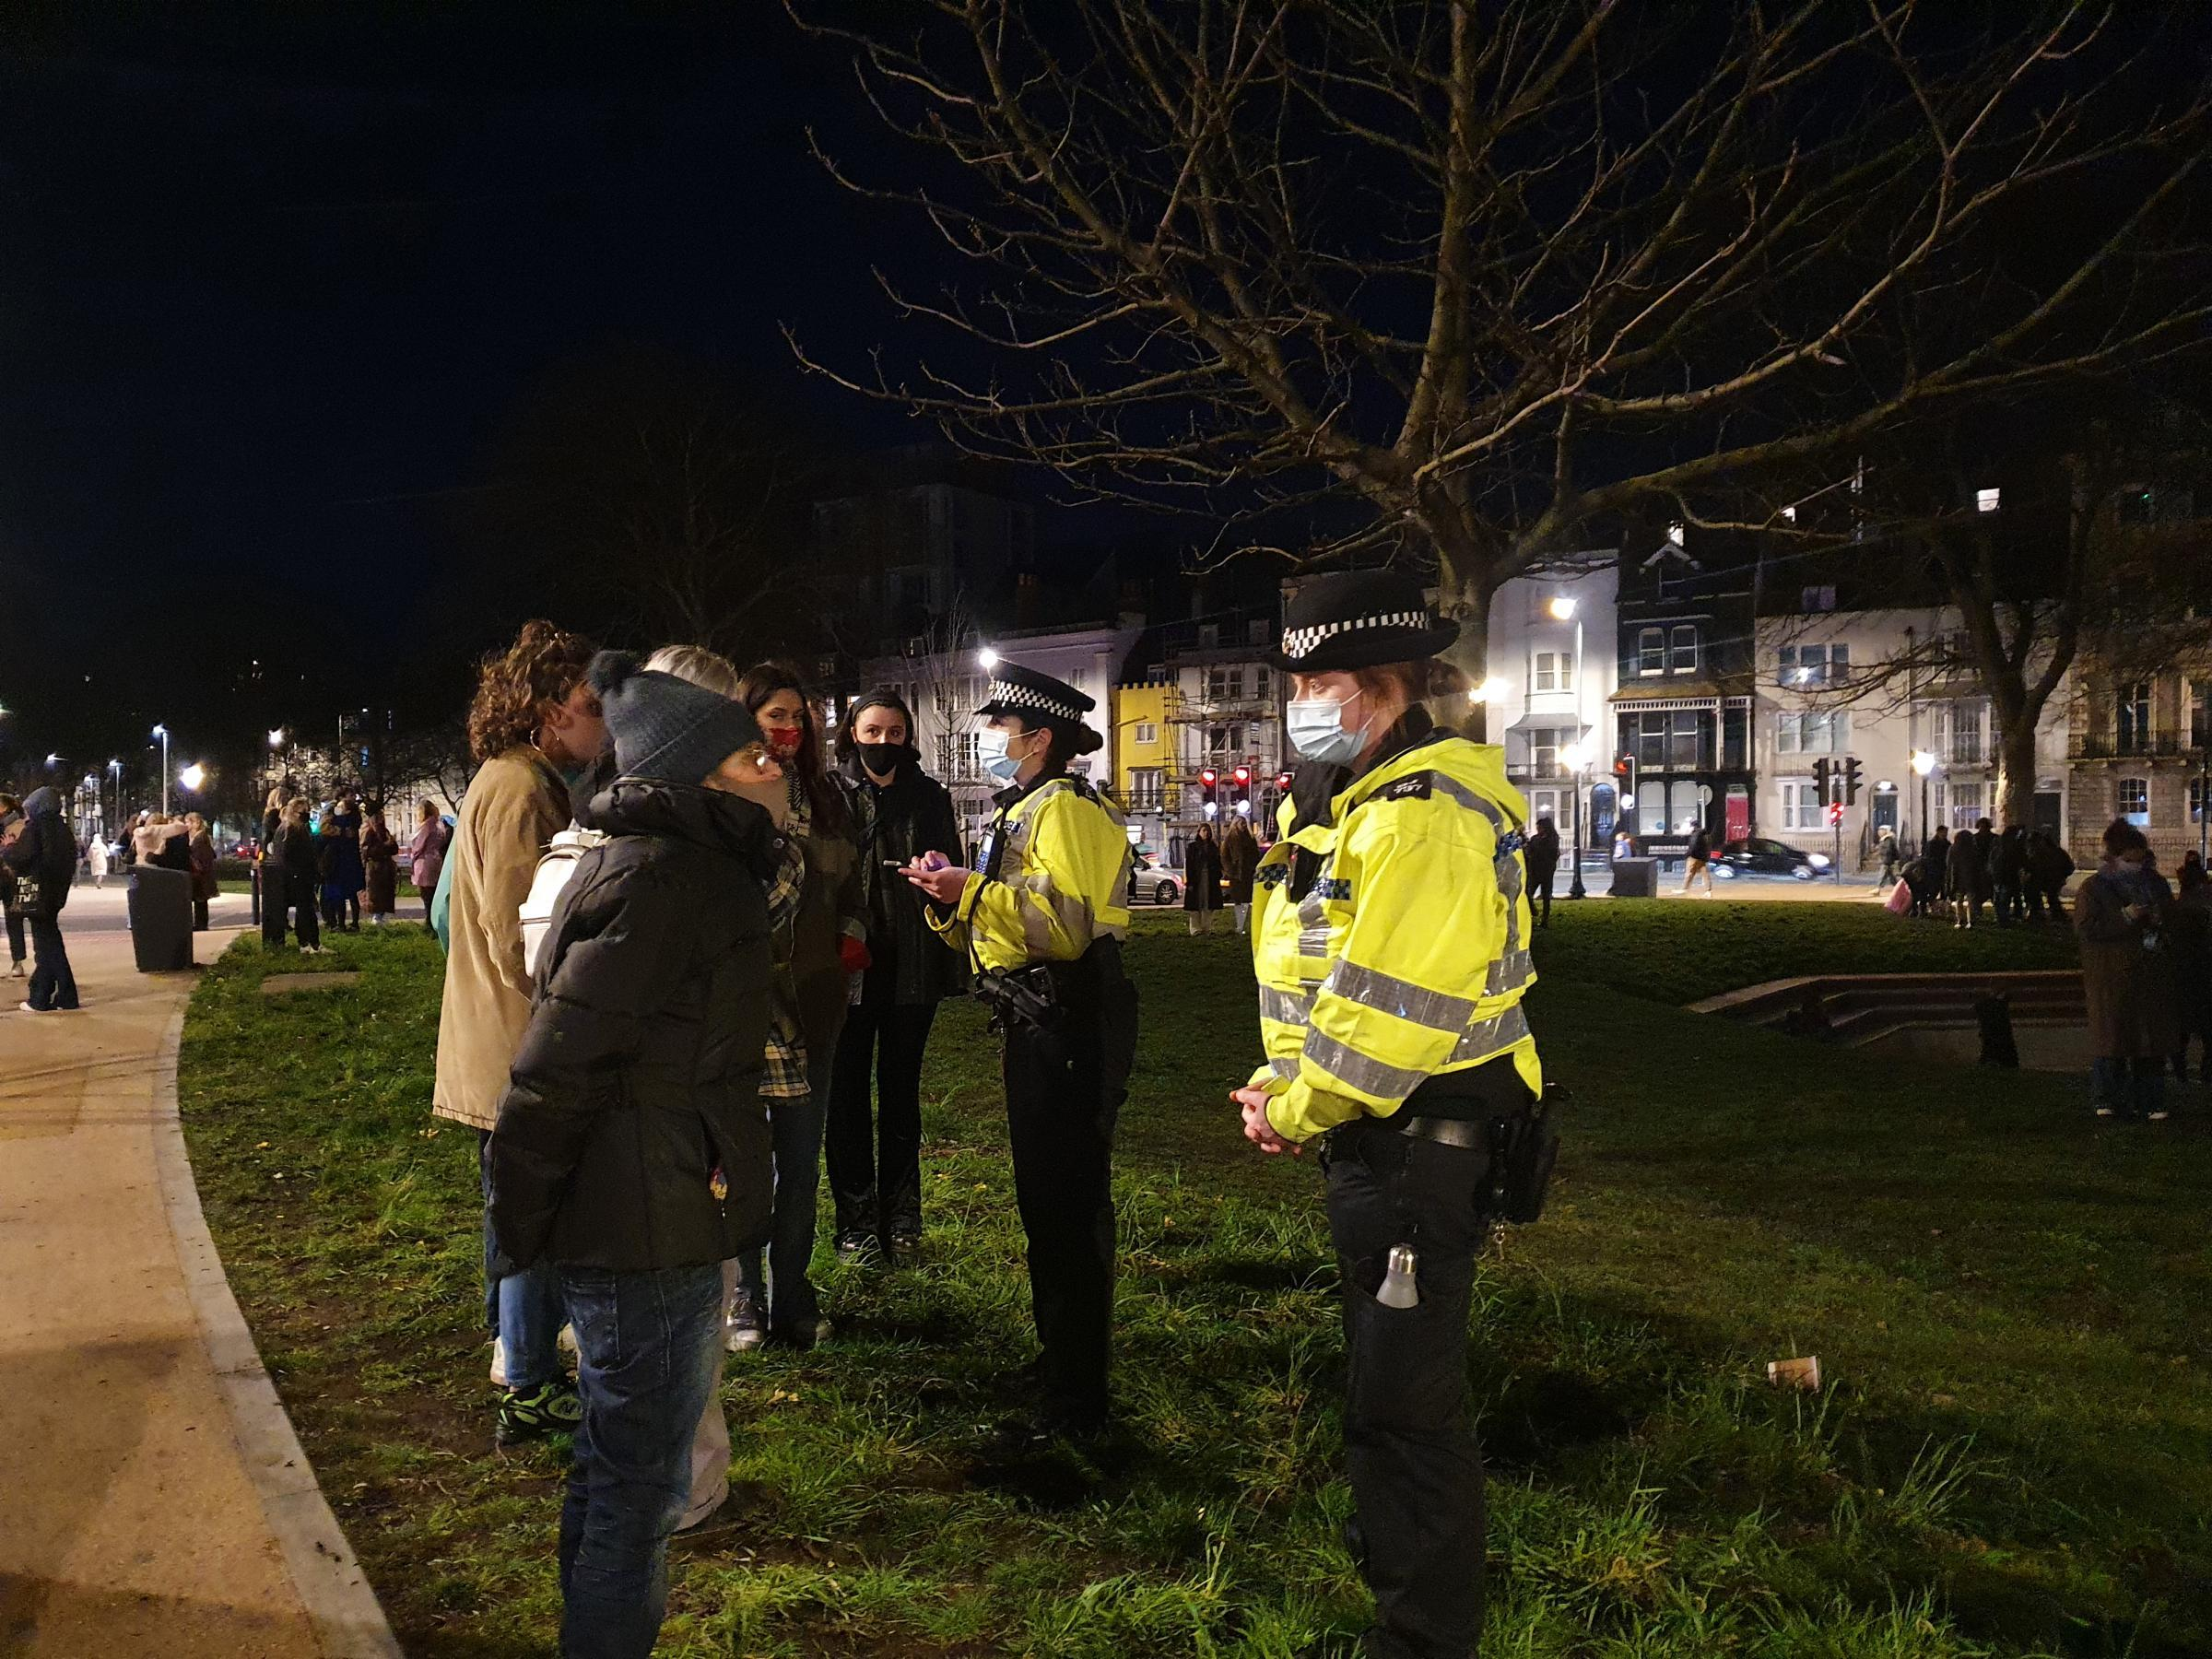 Pictures from the vigil in memory of Sarah Everard in Brighton, where police issued eight fines and made one arrest for breaches of the coronavirus lockdown rules